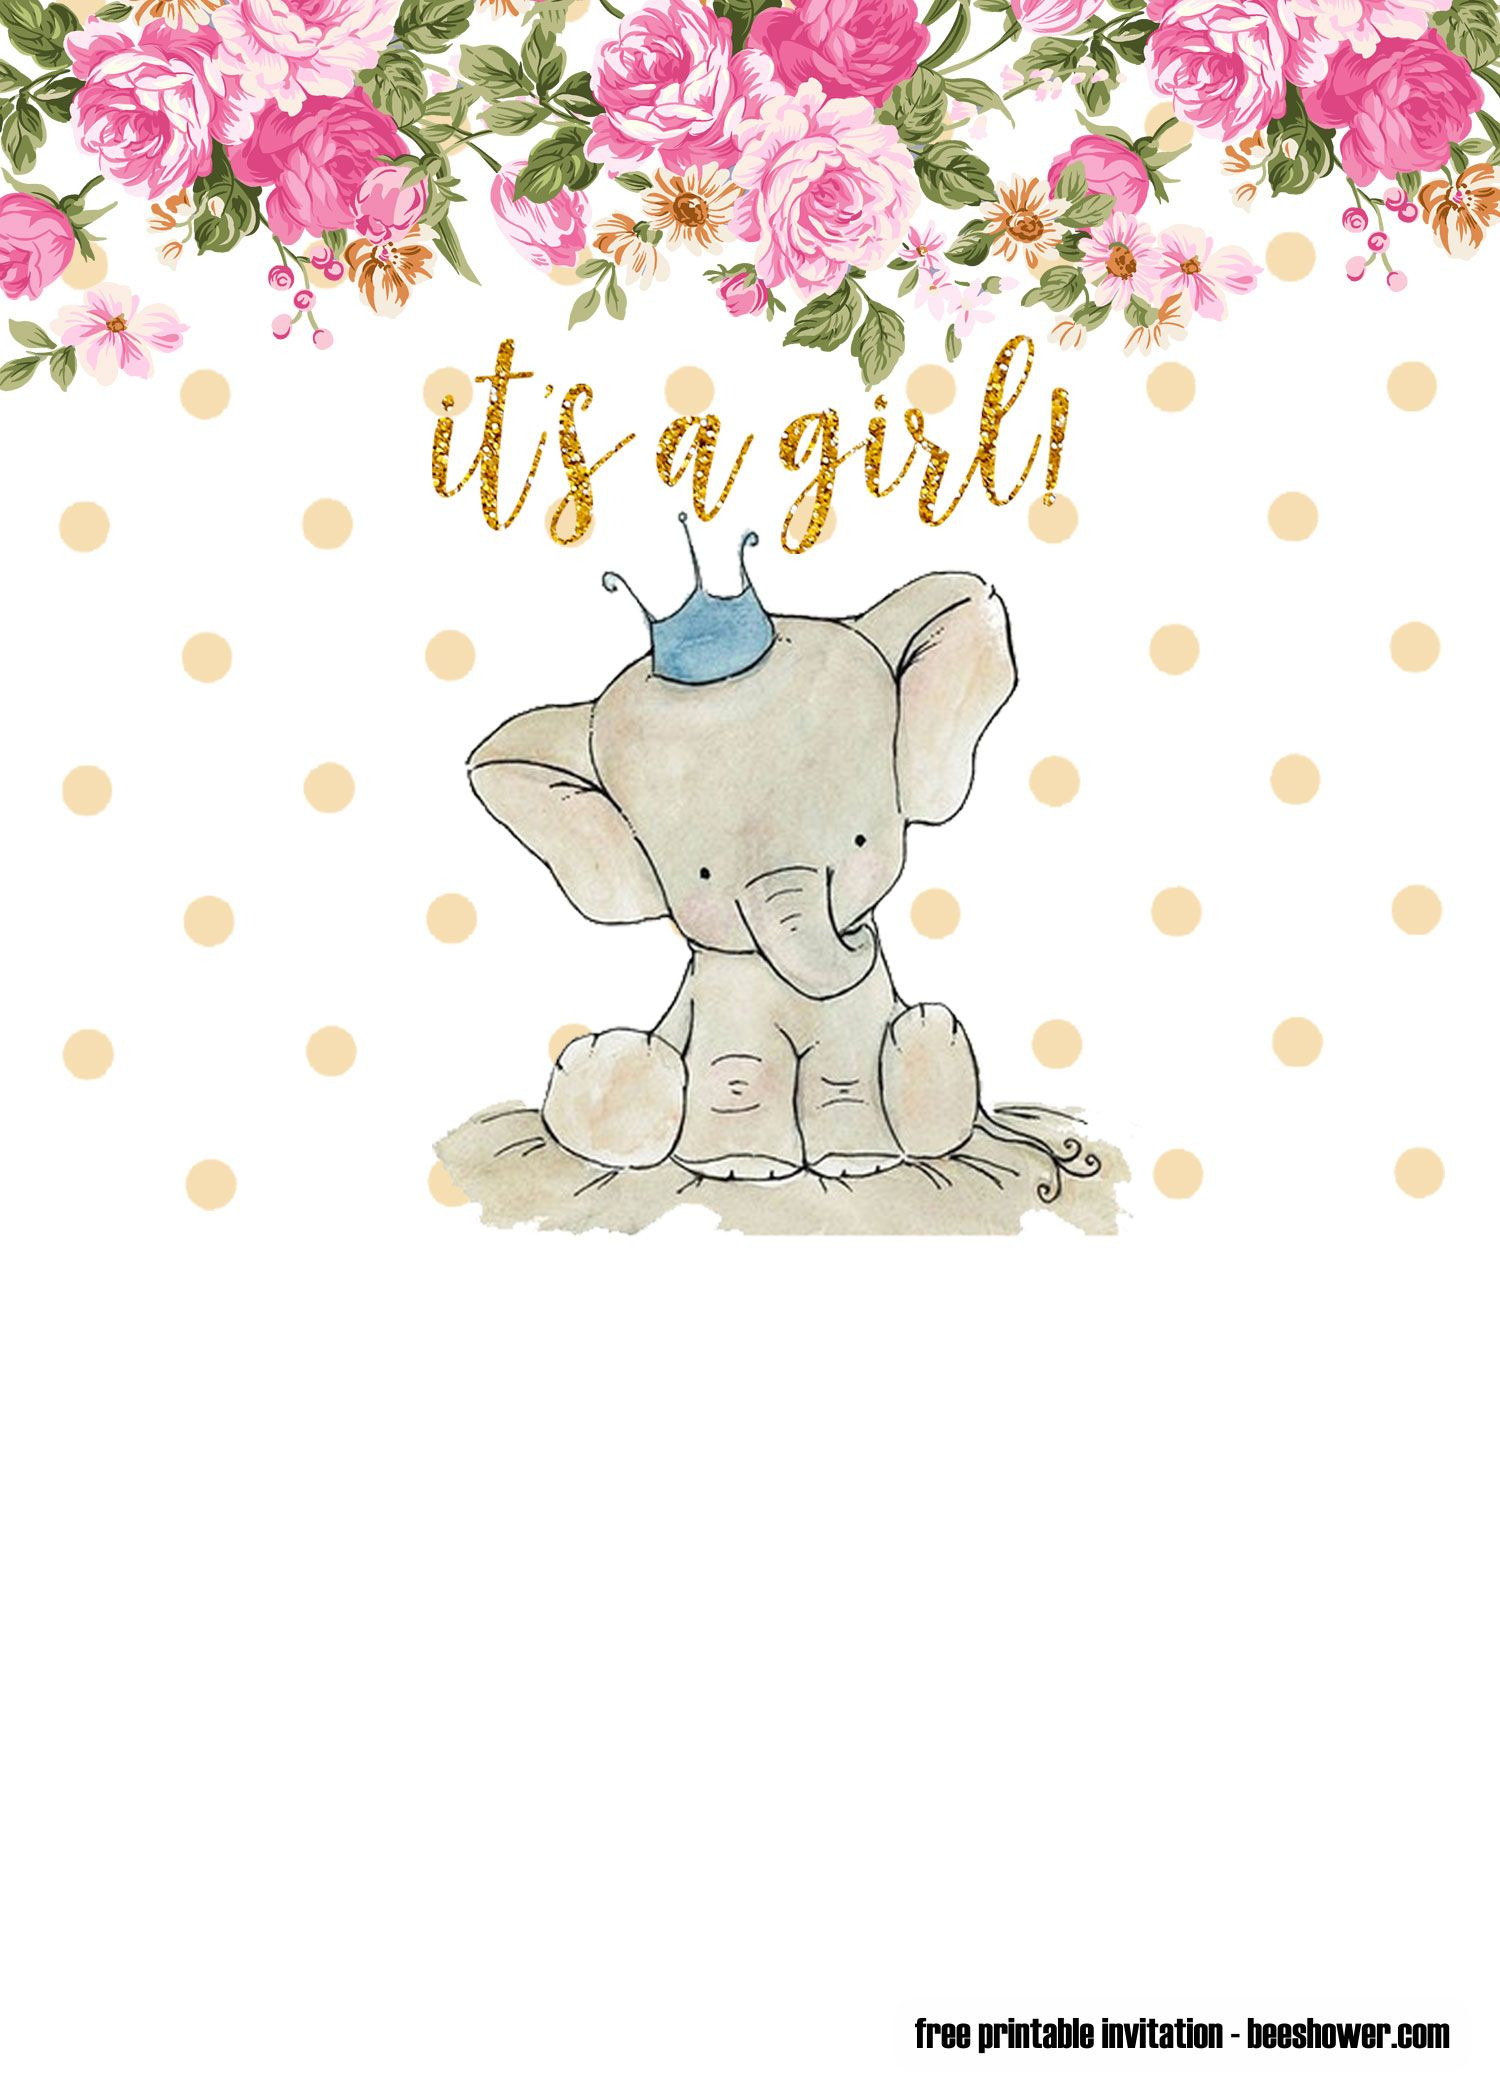 Pink Elephant Baby Shower Free Printables : elephant, shower, printables, Elephant, Invitation, Templates, Shower, Invitations,, Templates,, Invitations